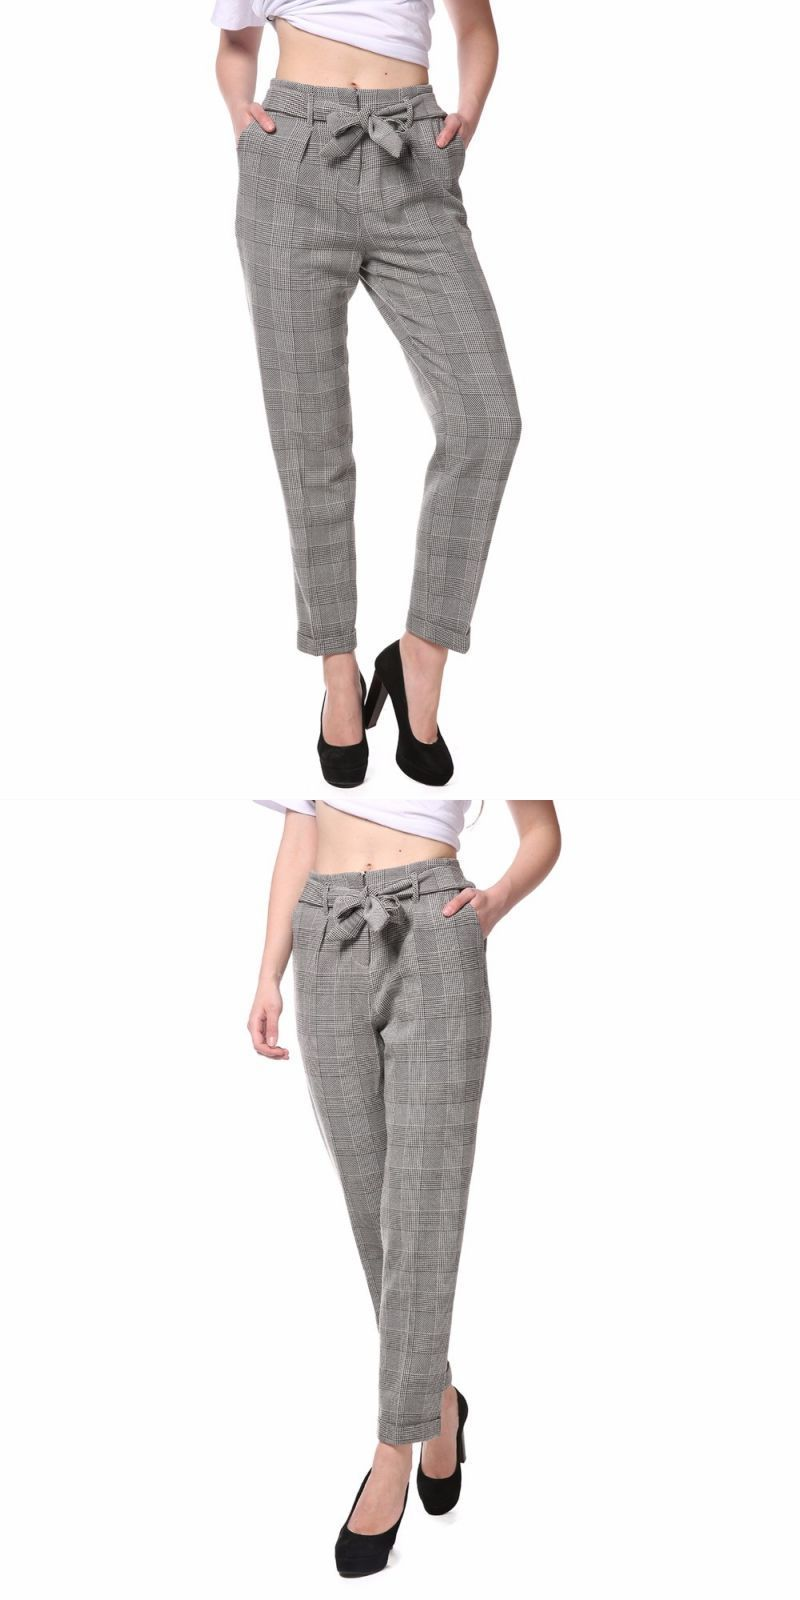 f95486ae810 Women casual plaid office lady pants female long straight trouser with sash  slim work wear trousers bottoms pt0002  women  full  length  mid  plaid   rayon ...